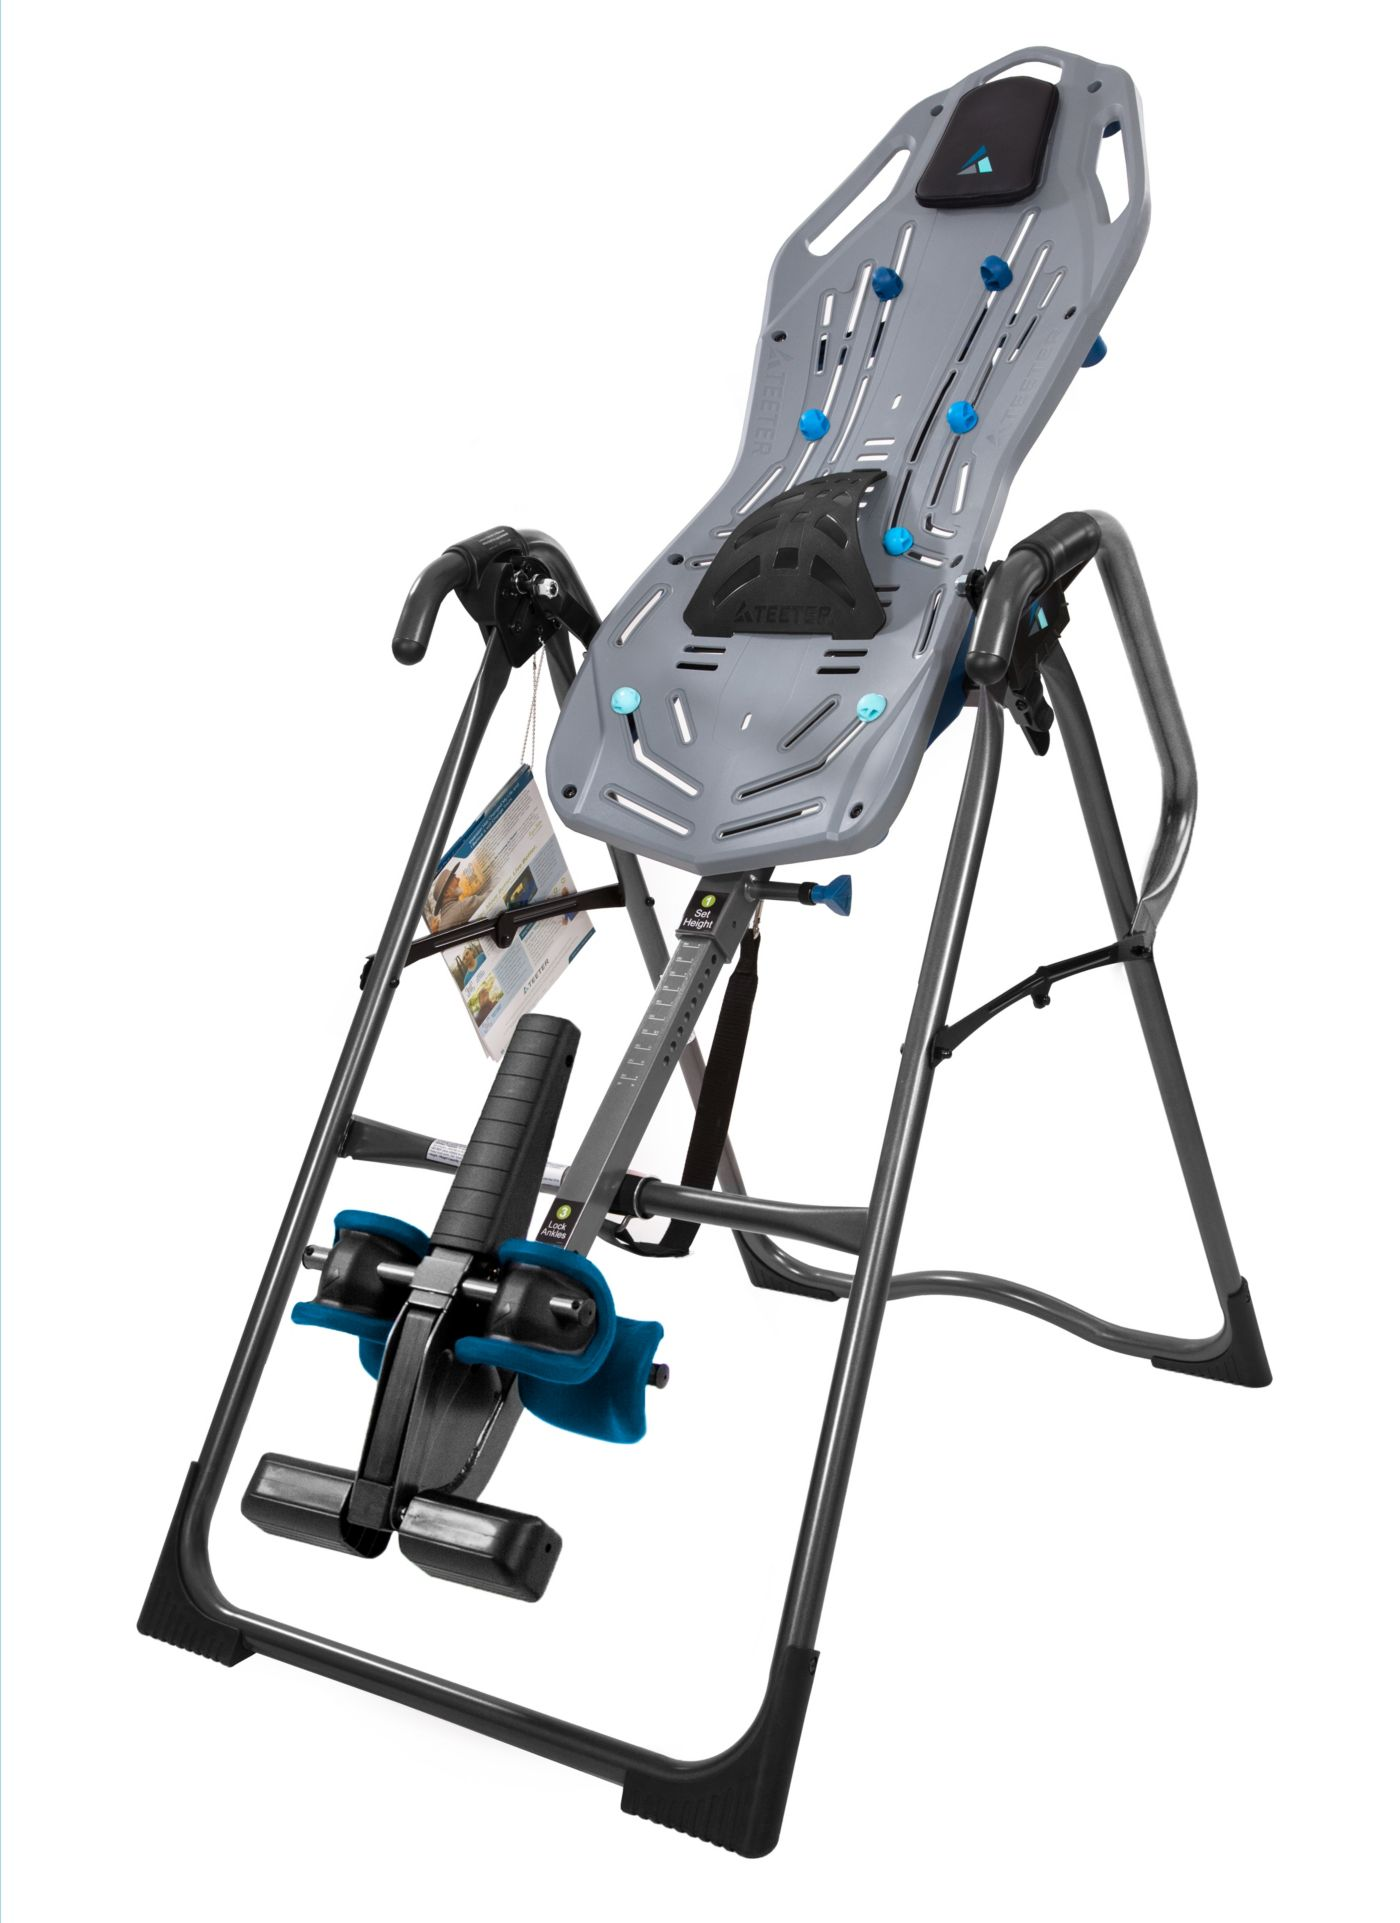 Teeter FitSpine FT-1 Inversion Table with Back Pain Relief DVD